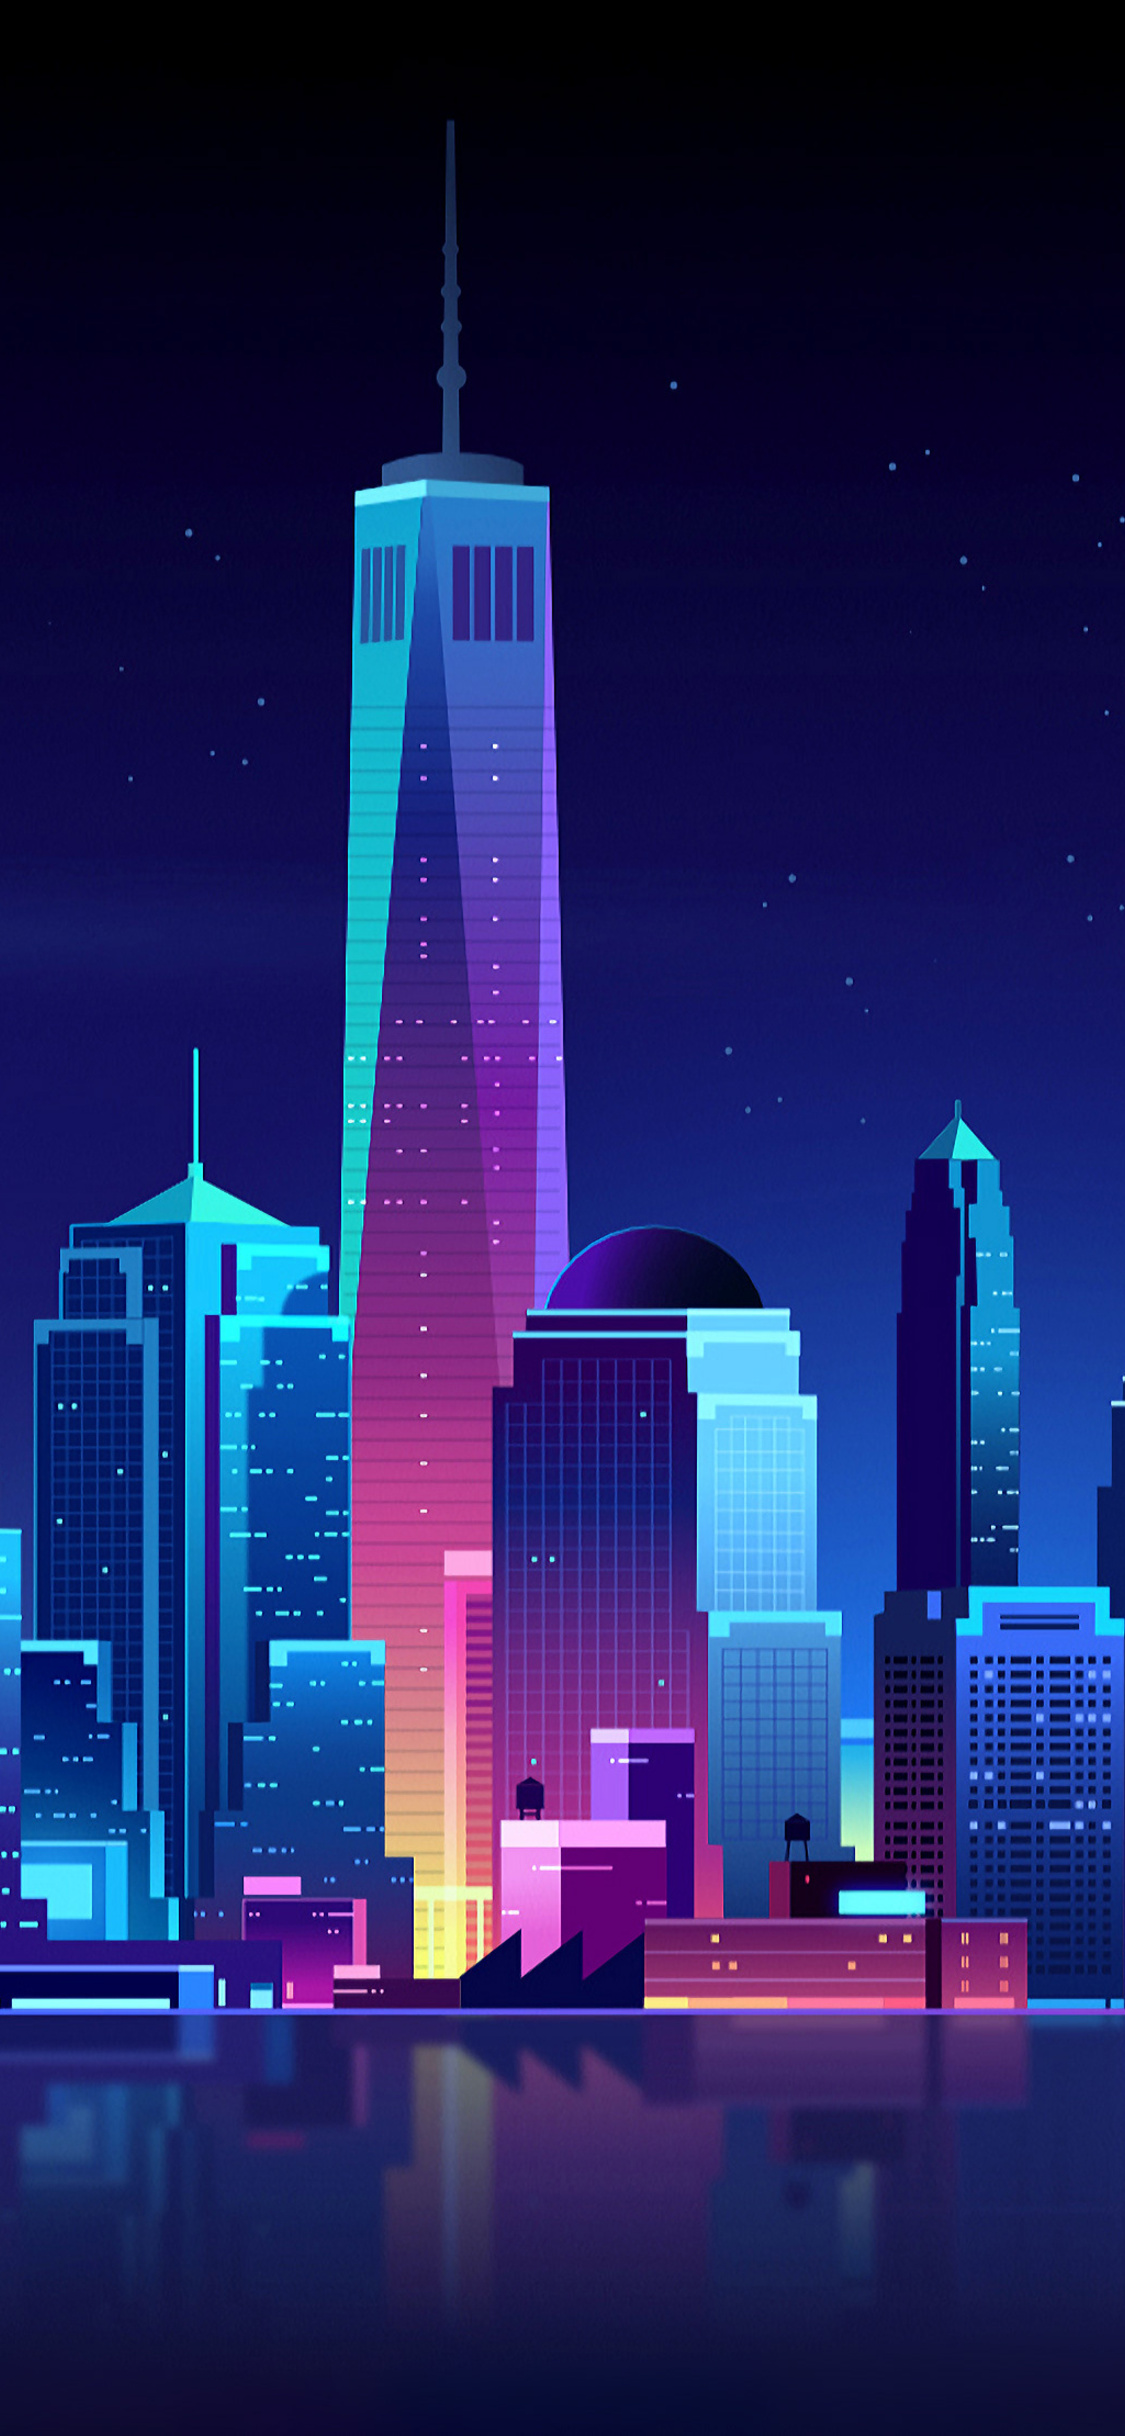 Iphone X Wallpaper 4k New York Wallpaper Iphone